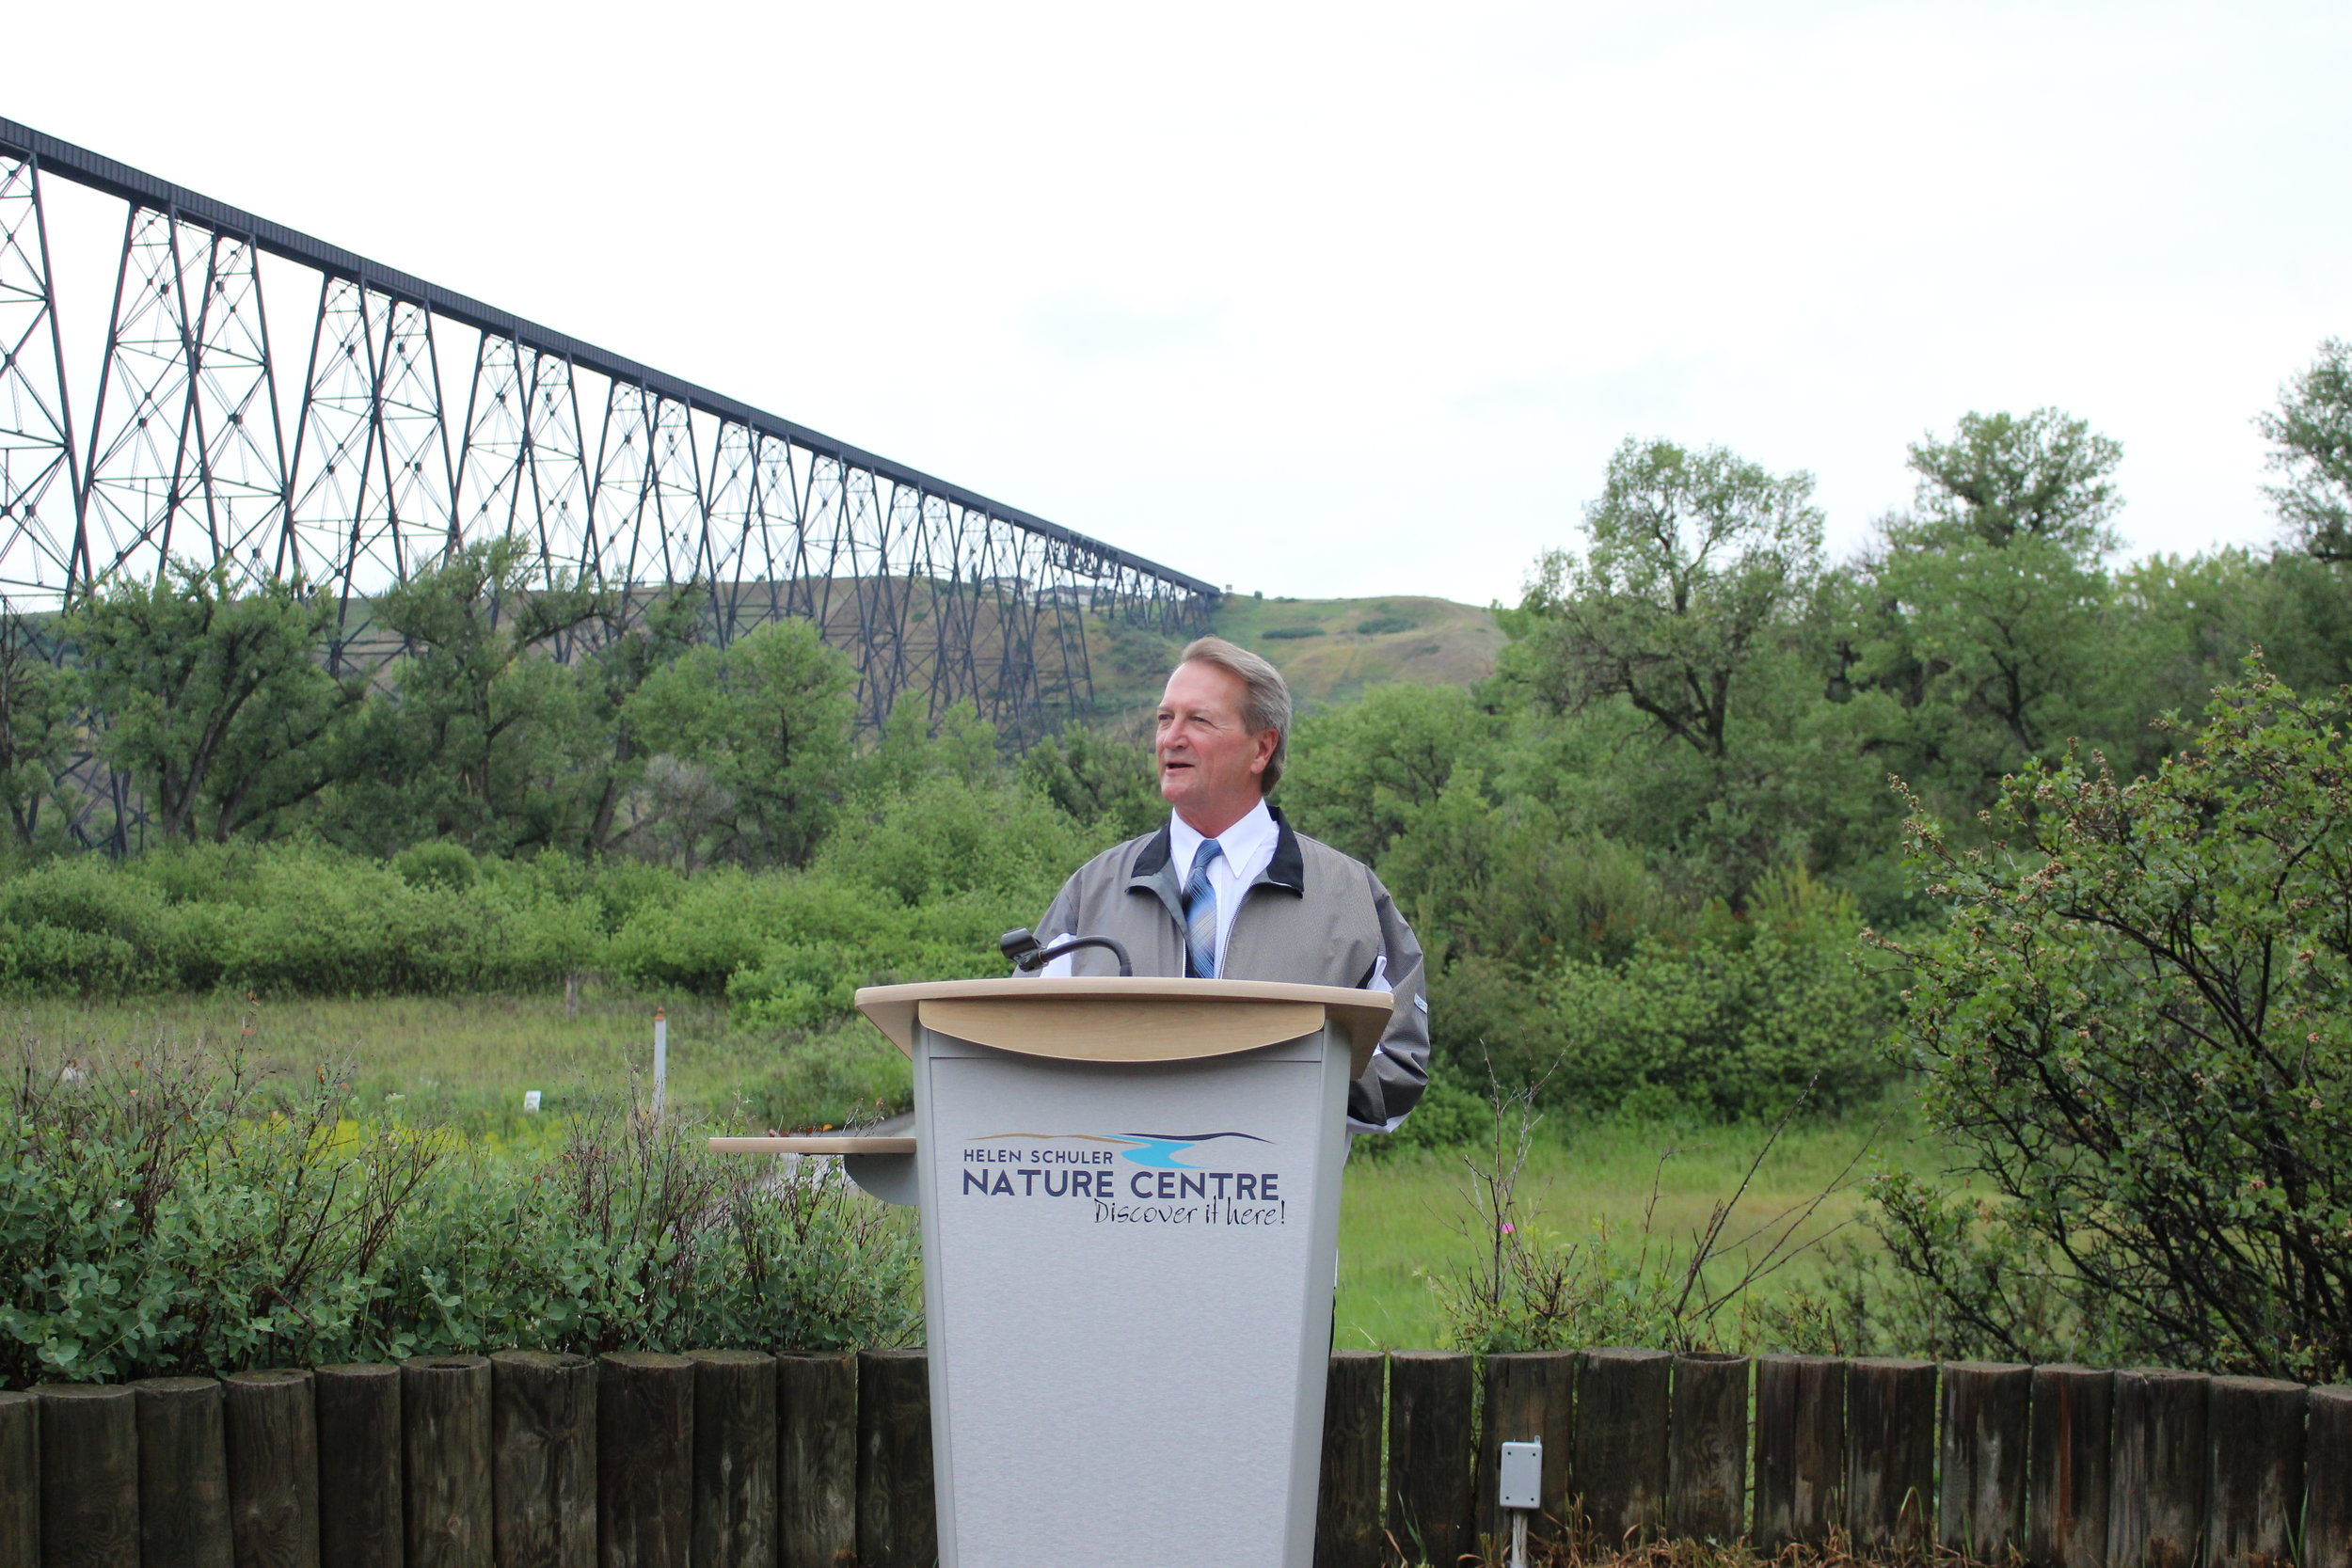 Jim Saunders, chairman of the Alberta Real Estate Foundation, shares why the Outdoor Classroom project is important for our community and region